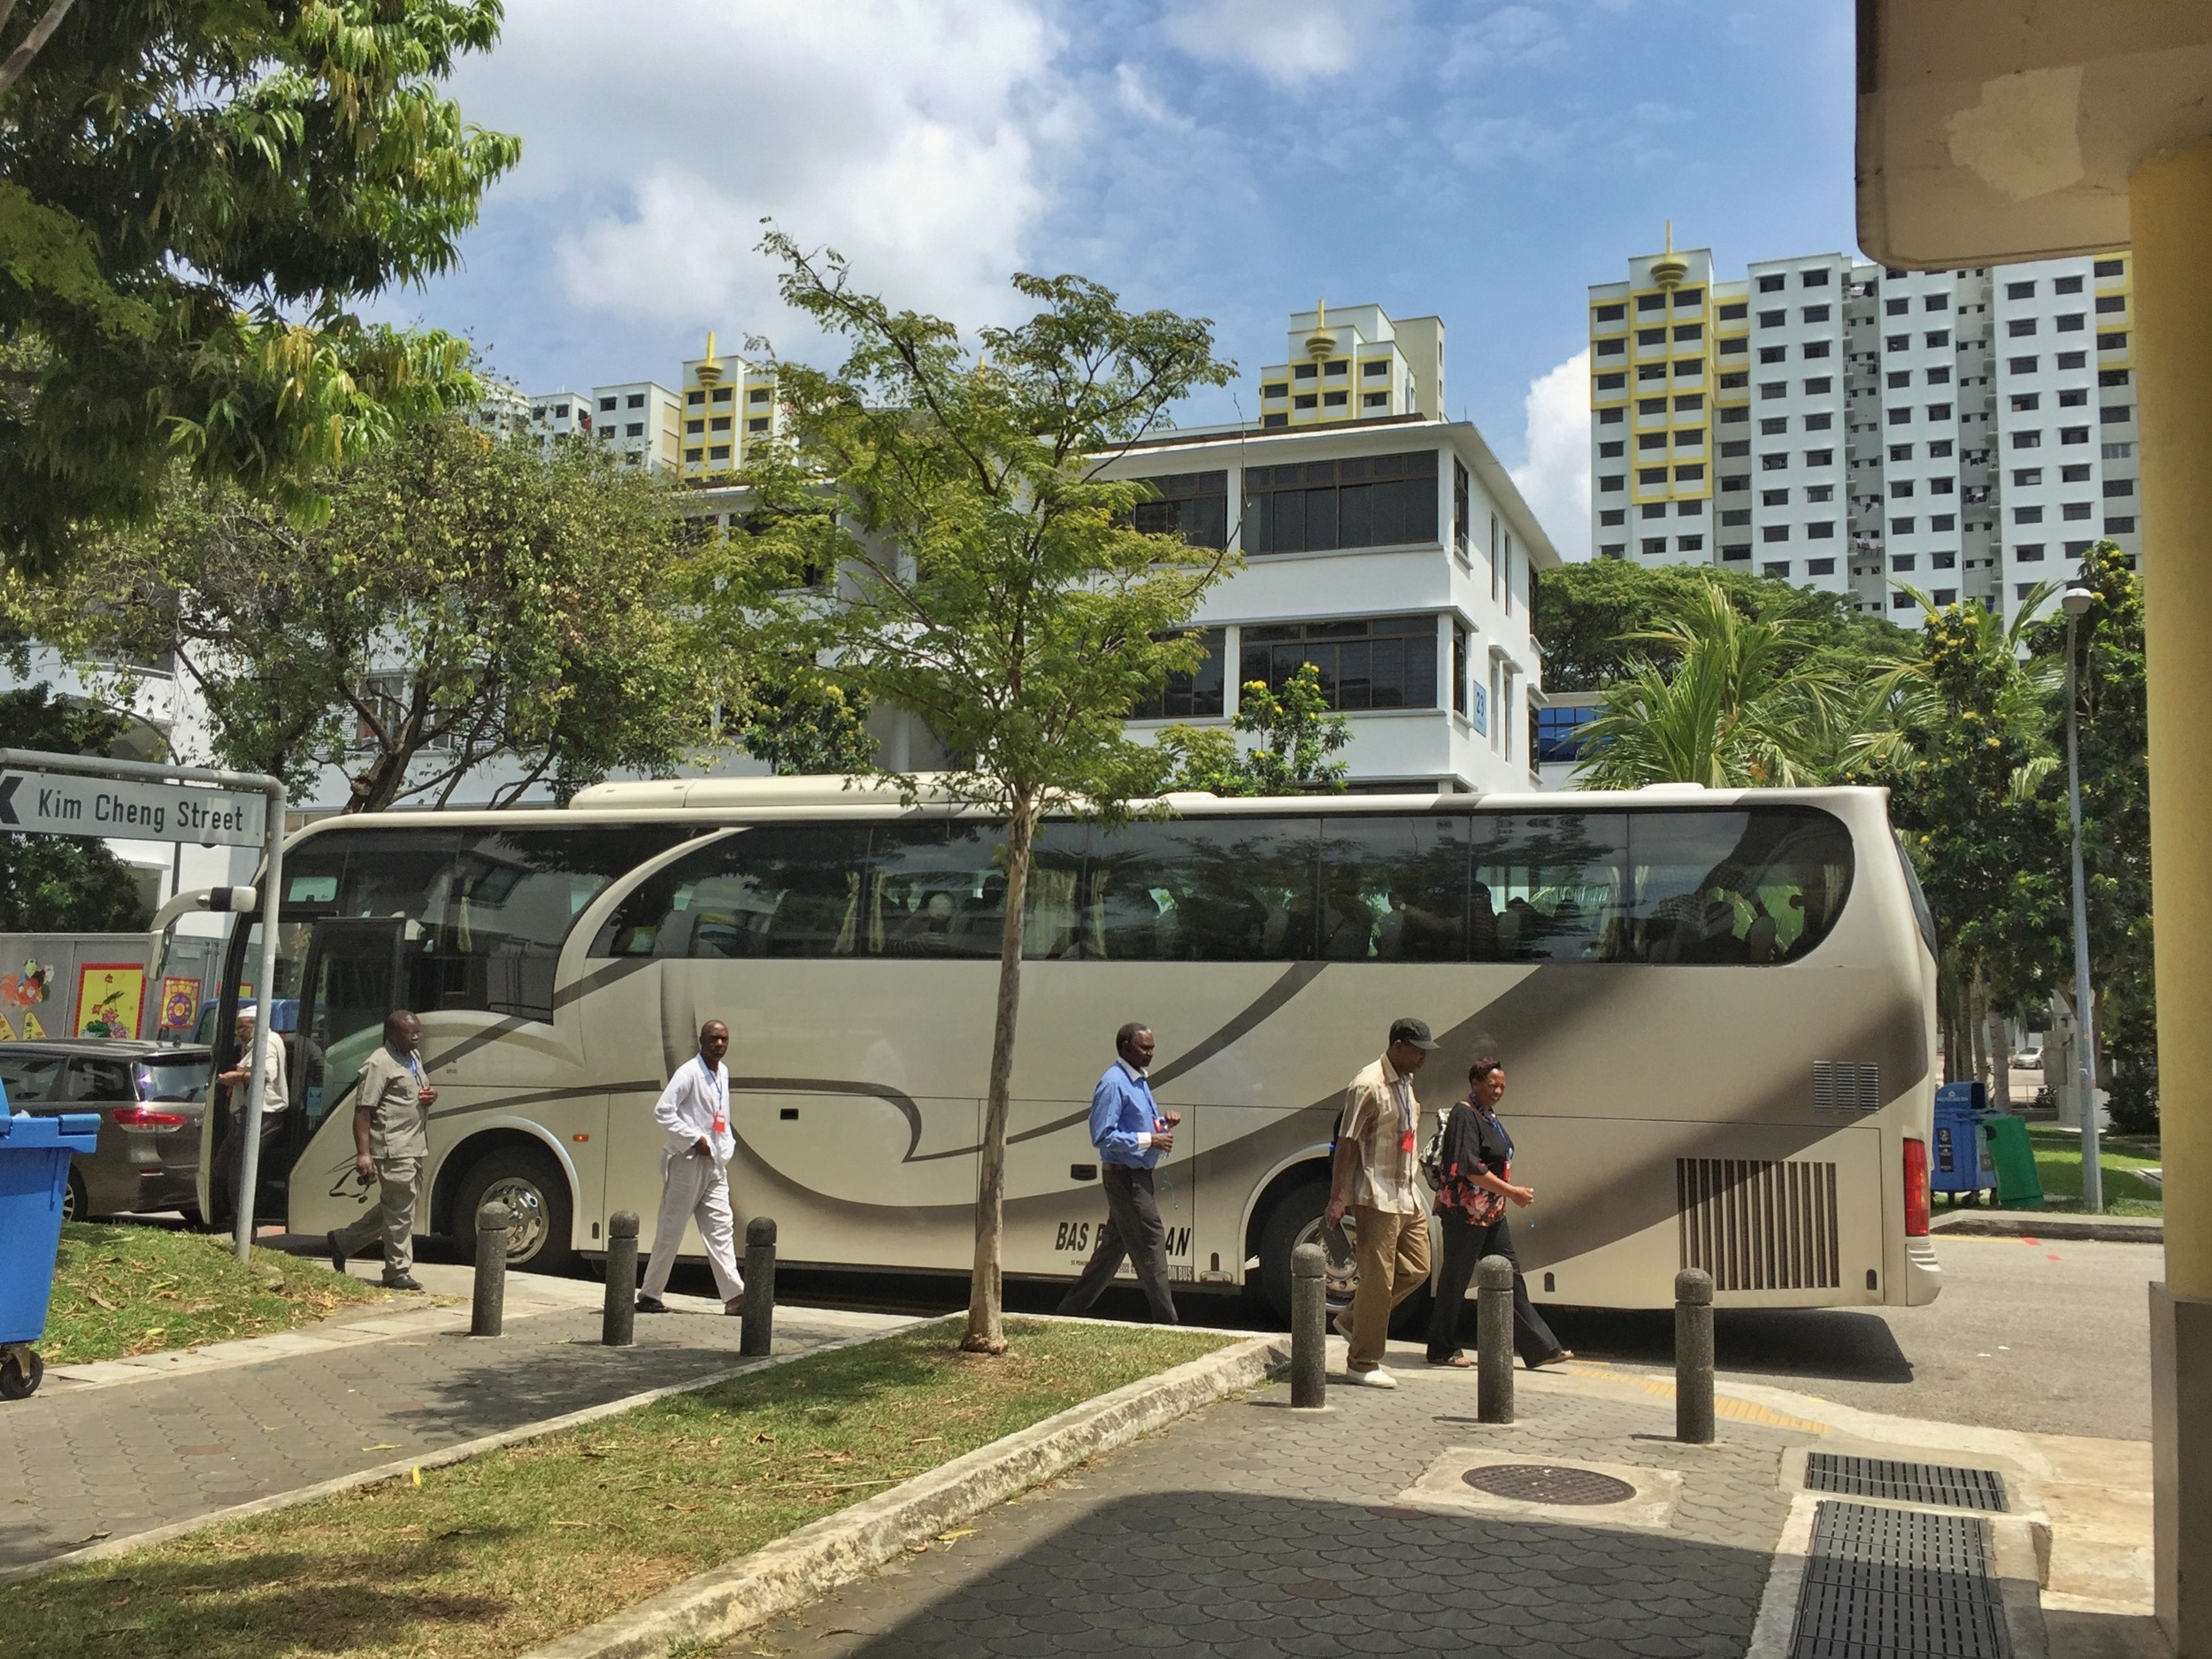 A tour bus pulls in by Tiong Bahru Market. For photographs of the estate's cafés and hipster-friendly alleyways, simply scour #tiongbahru on Instragram.